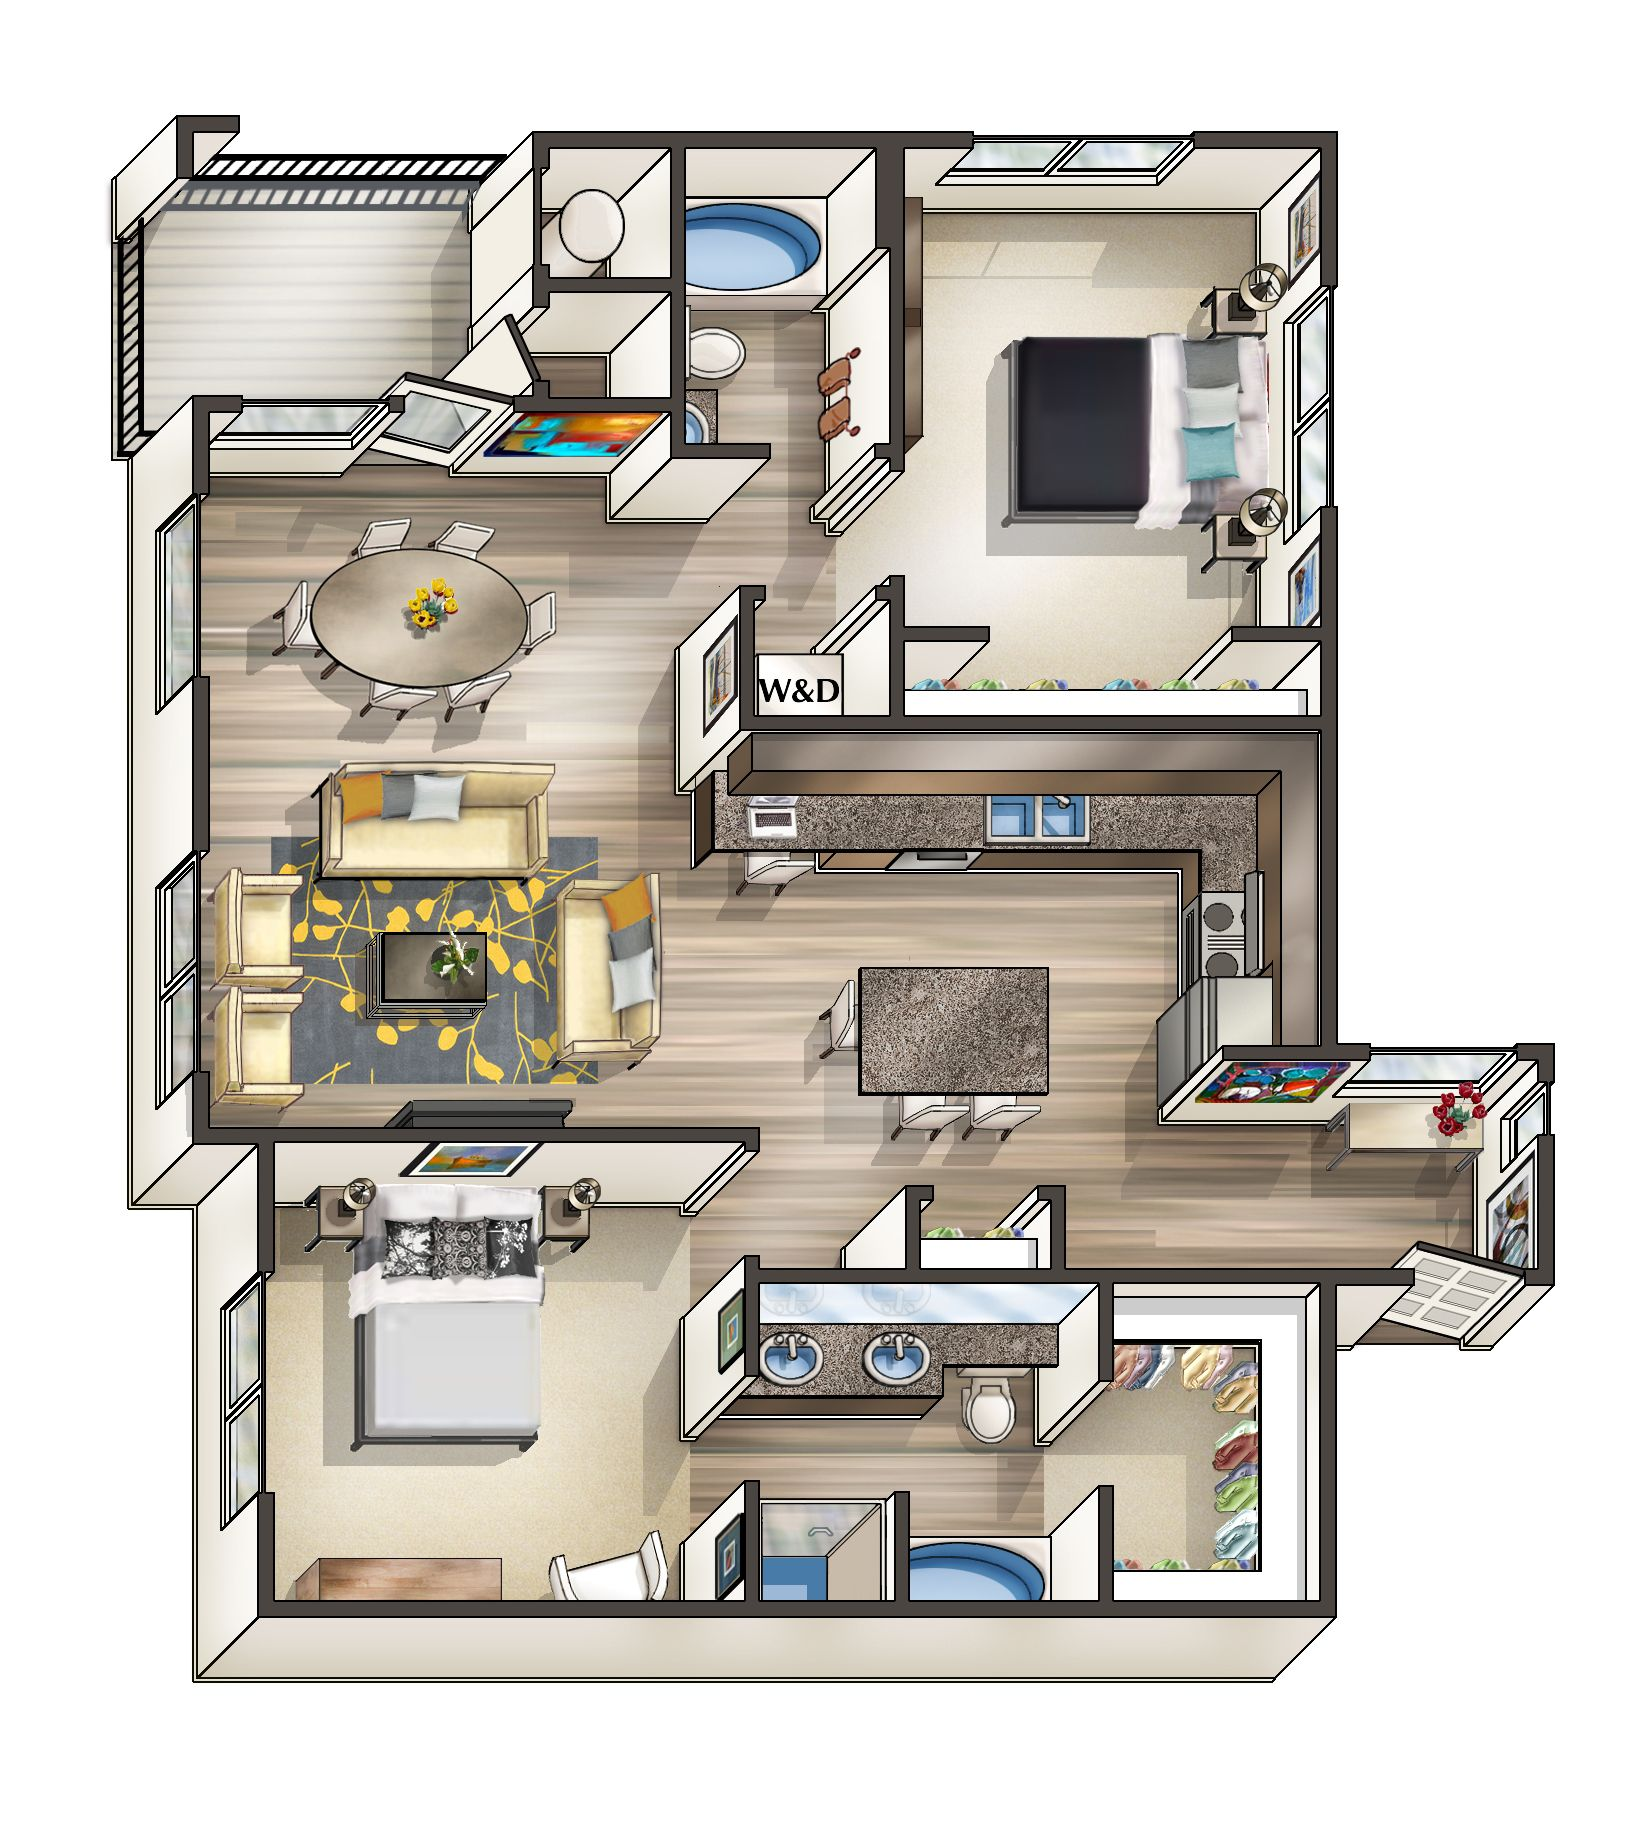 500 sq ft house plans 2 bedrooms - Google Search | Garage ...